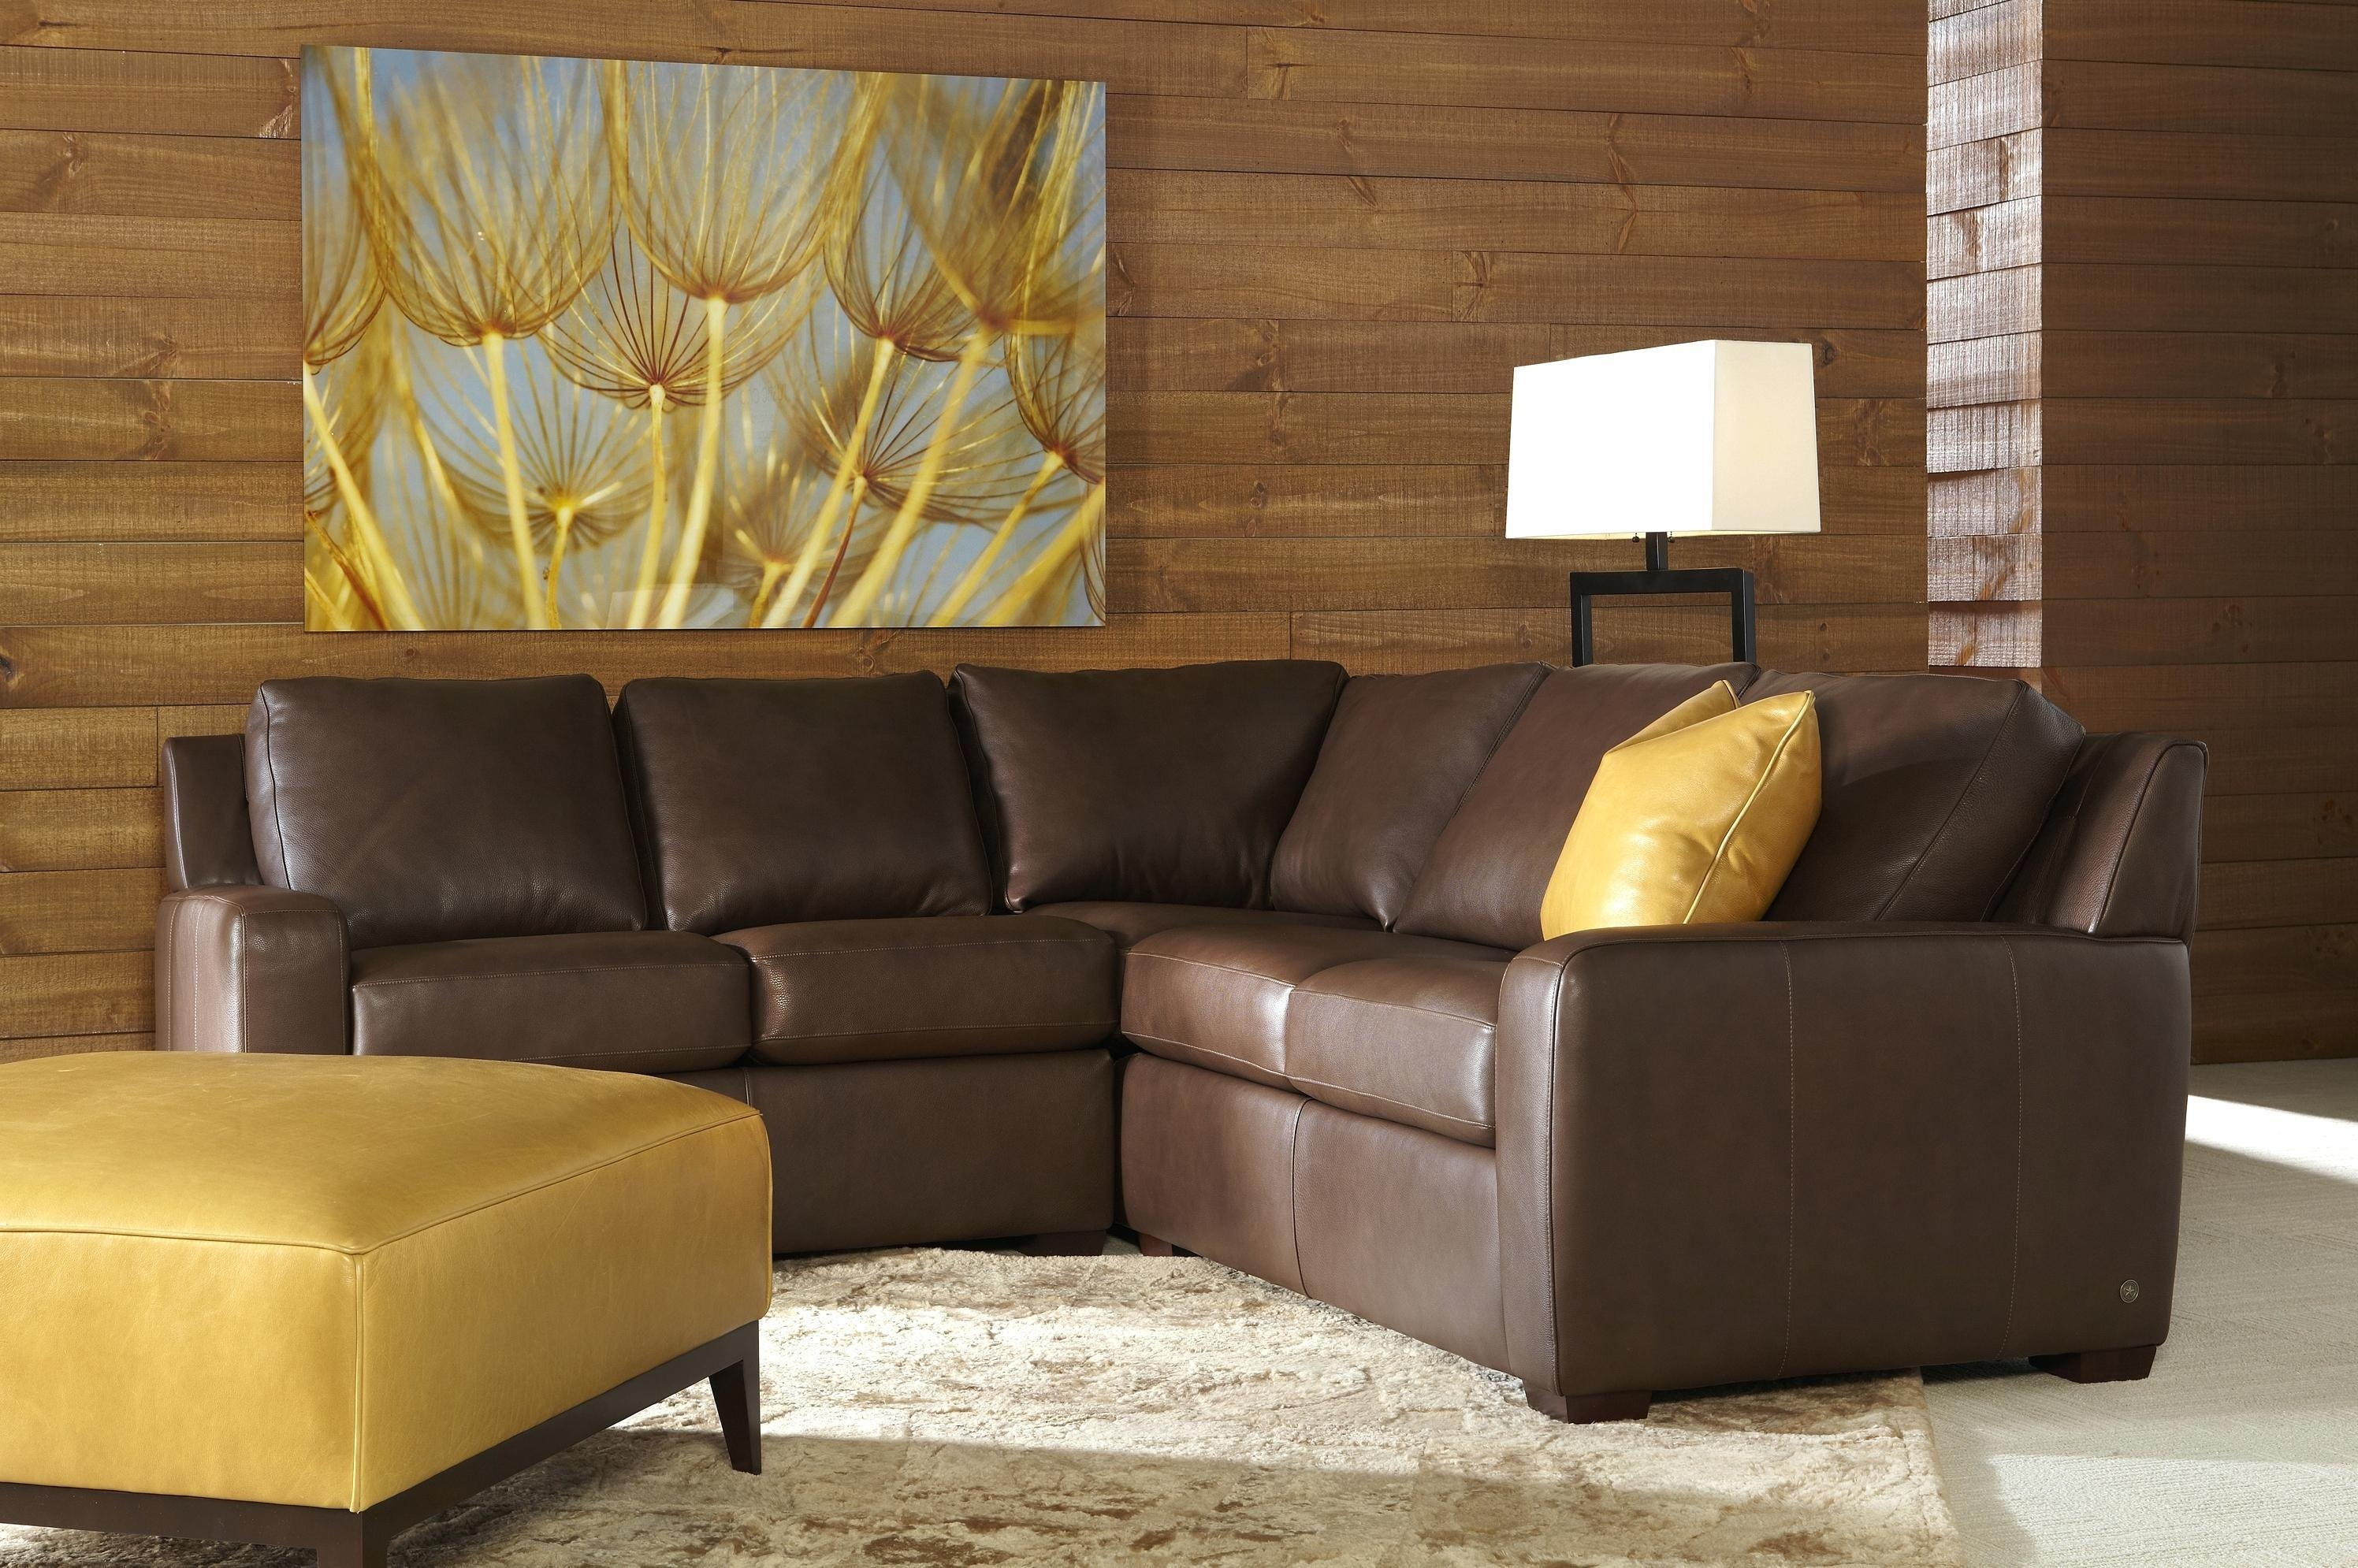 Sectional Sleeper Sofa For Small Spaces With Chaise Leather Within Leather Storage Sofas (View 18 of 21)